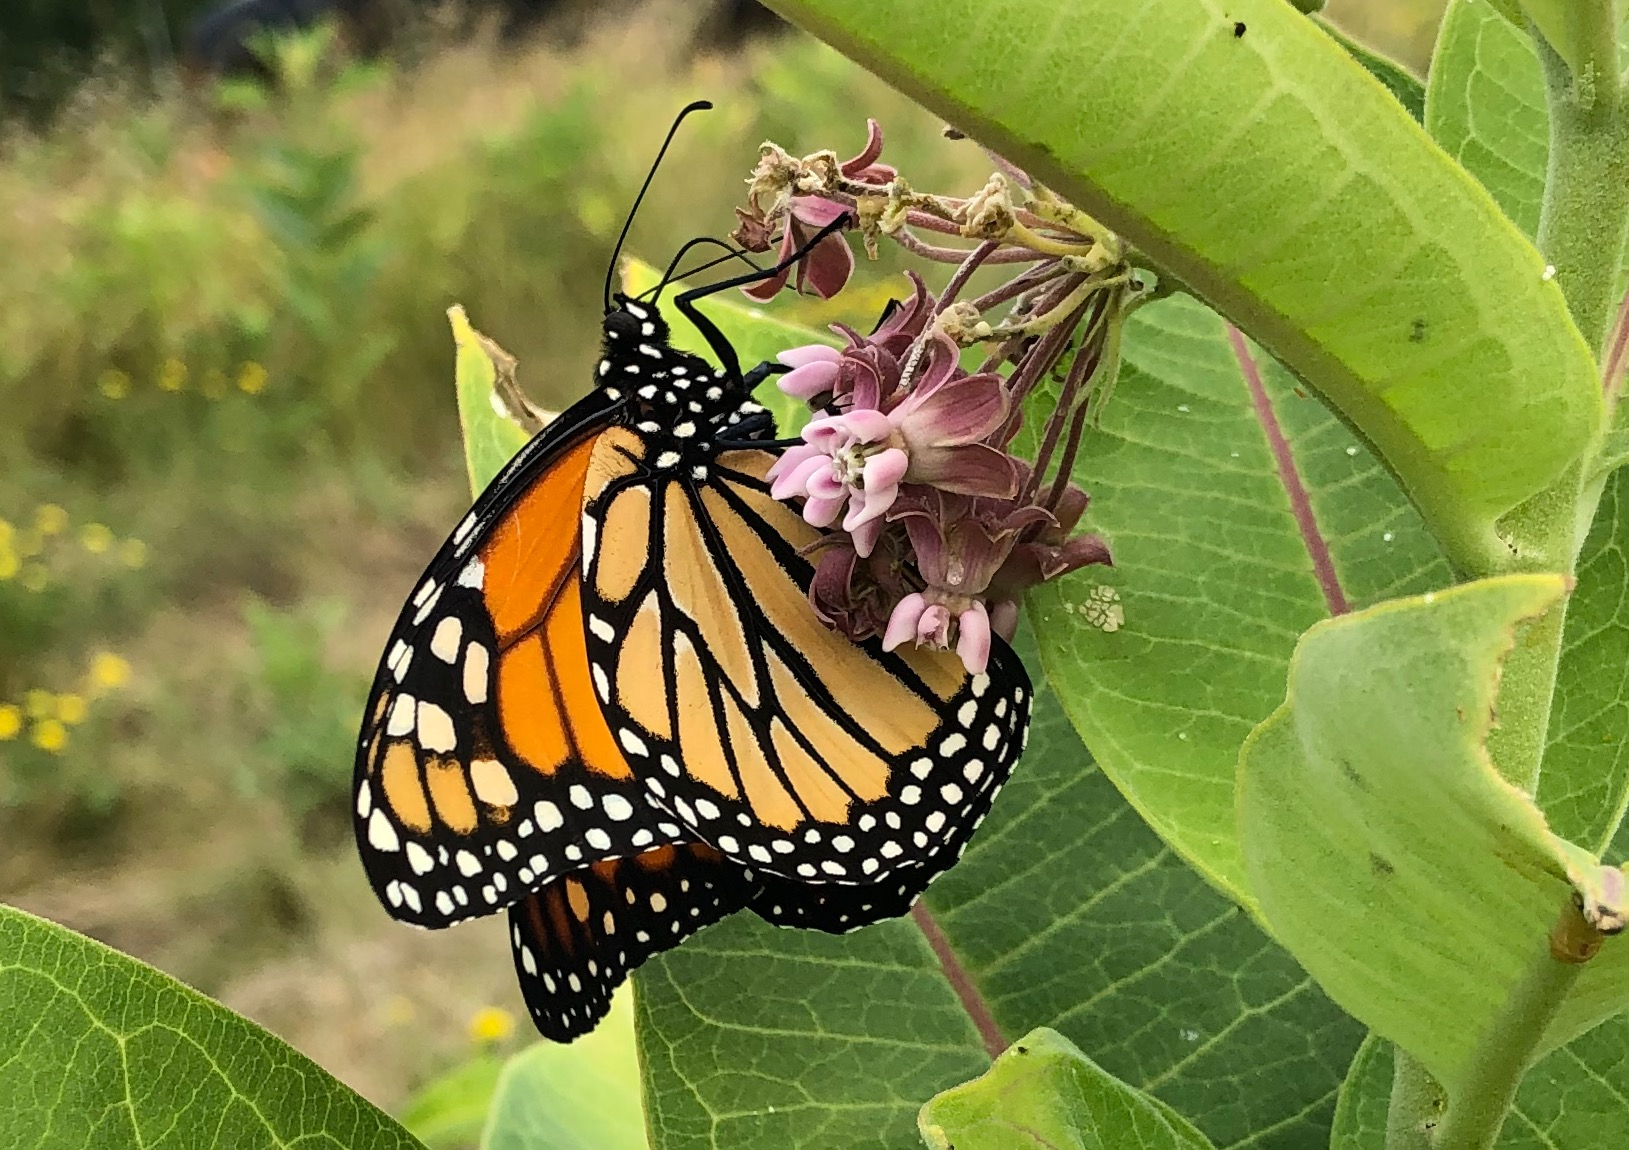 adult monarch butterfly drinking nectar from milkweed flower